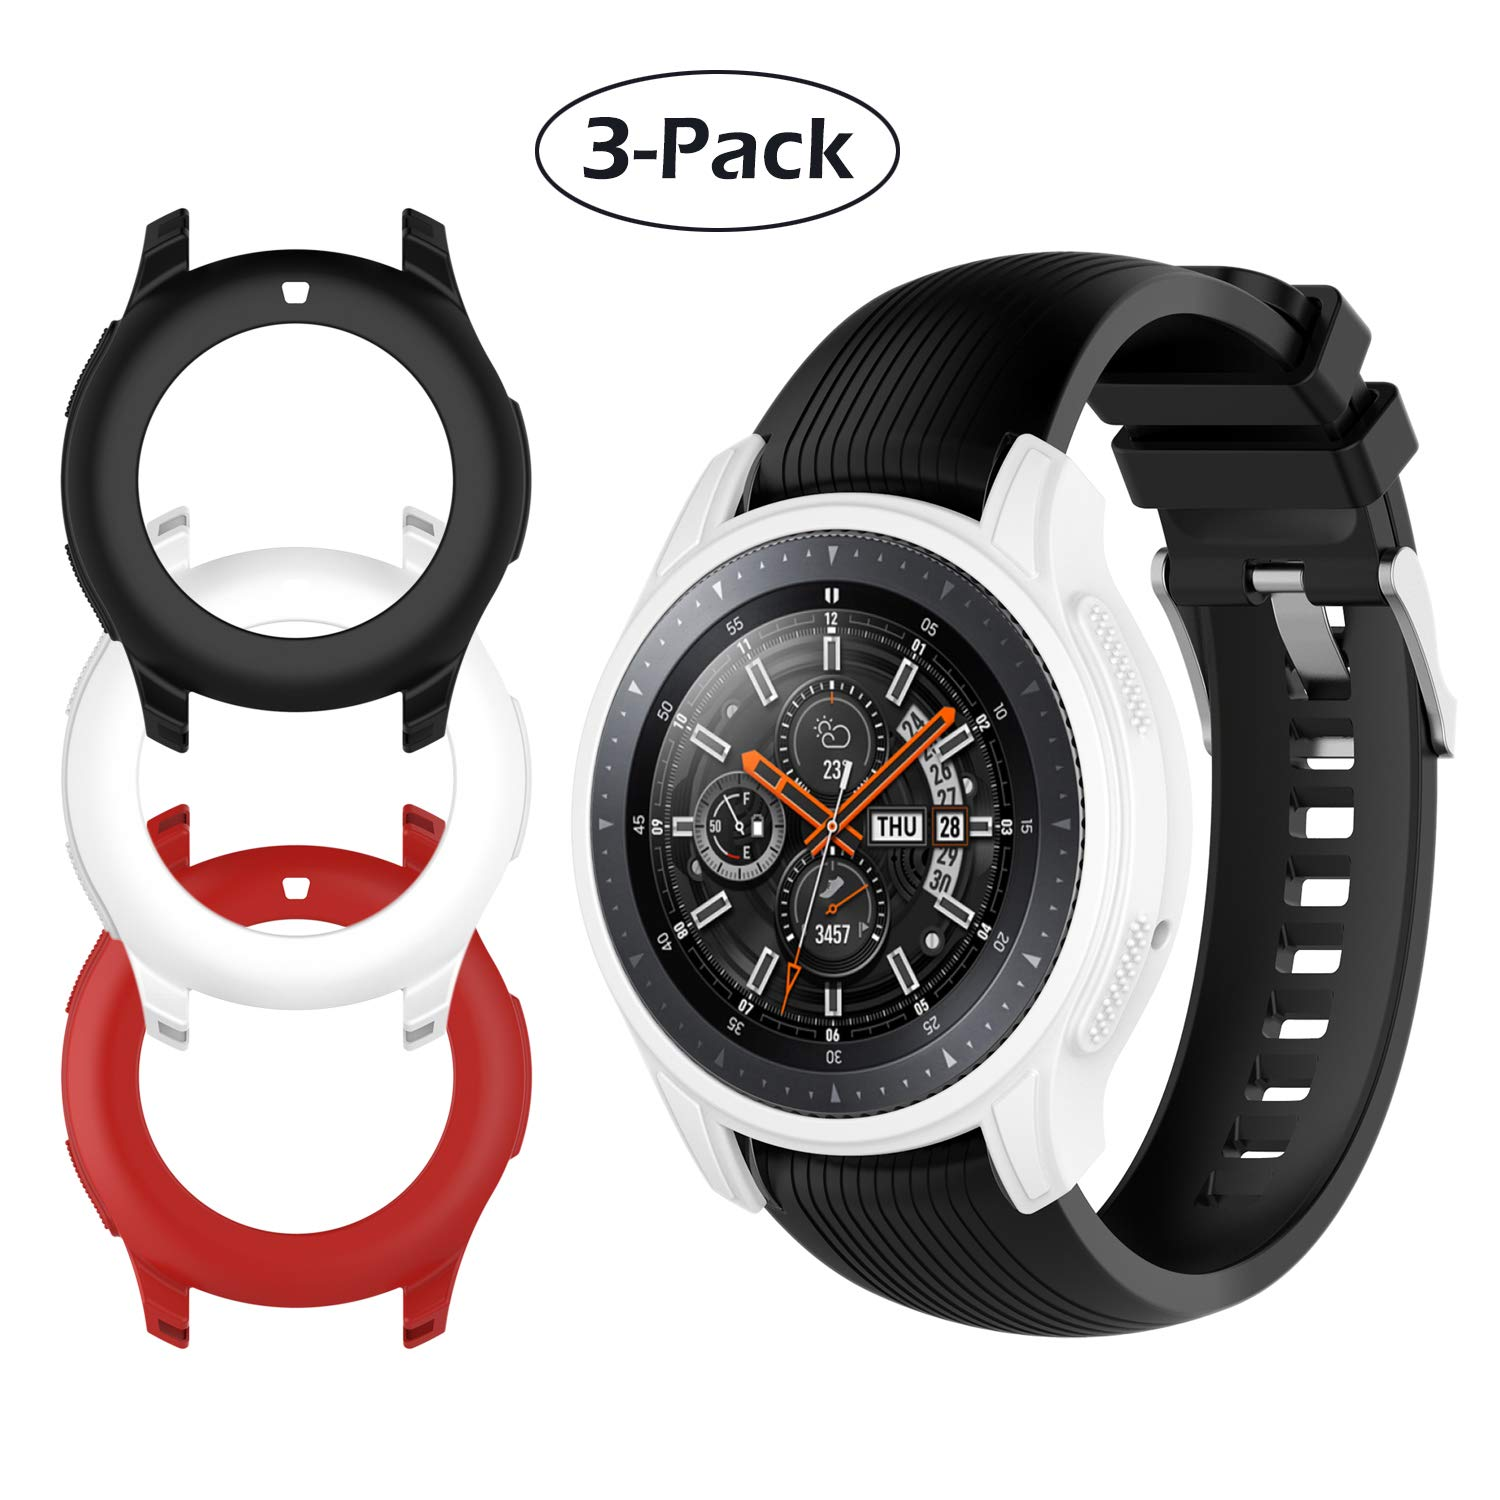 d33ffbf234f54 Case Fit Samsung Galaxy Watch (46mm) /Gear S3 Frontier Protector Case, Soft  TPU Shock-Proof Protective Bumper Sleeve Cover Case for Galaxy Watch (46mm)  ...